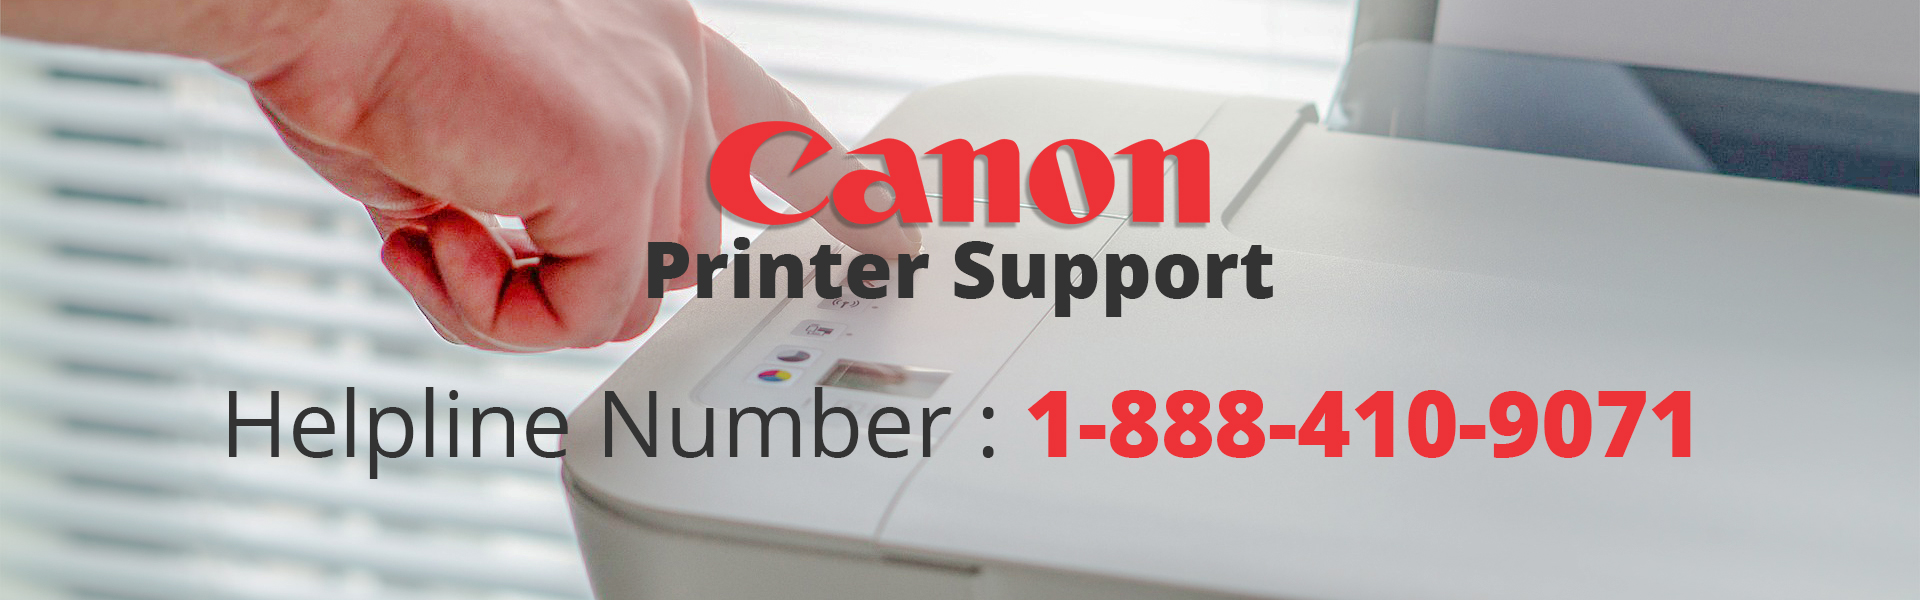 Canon printer Support 1-888-410-9071